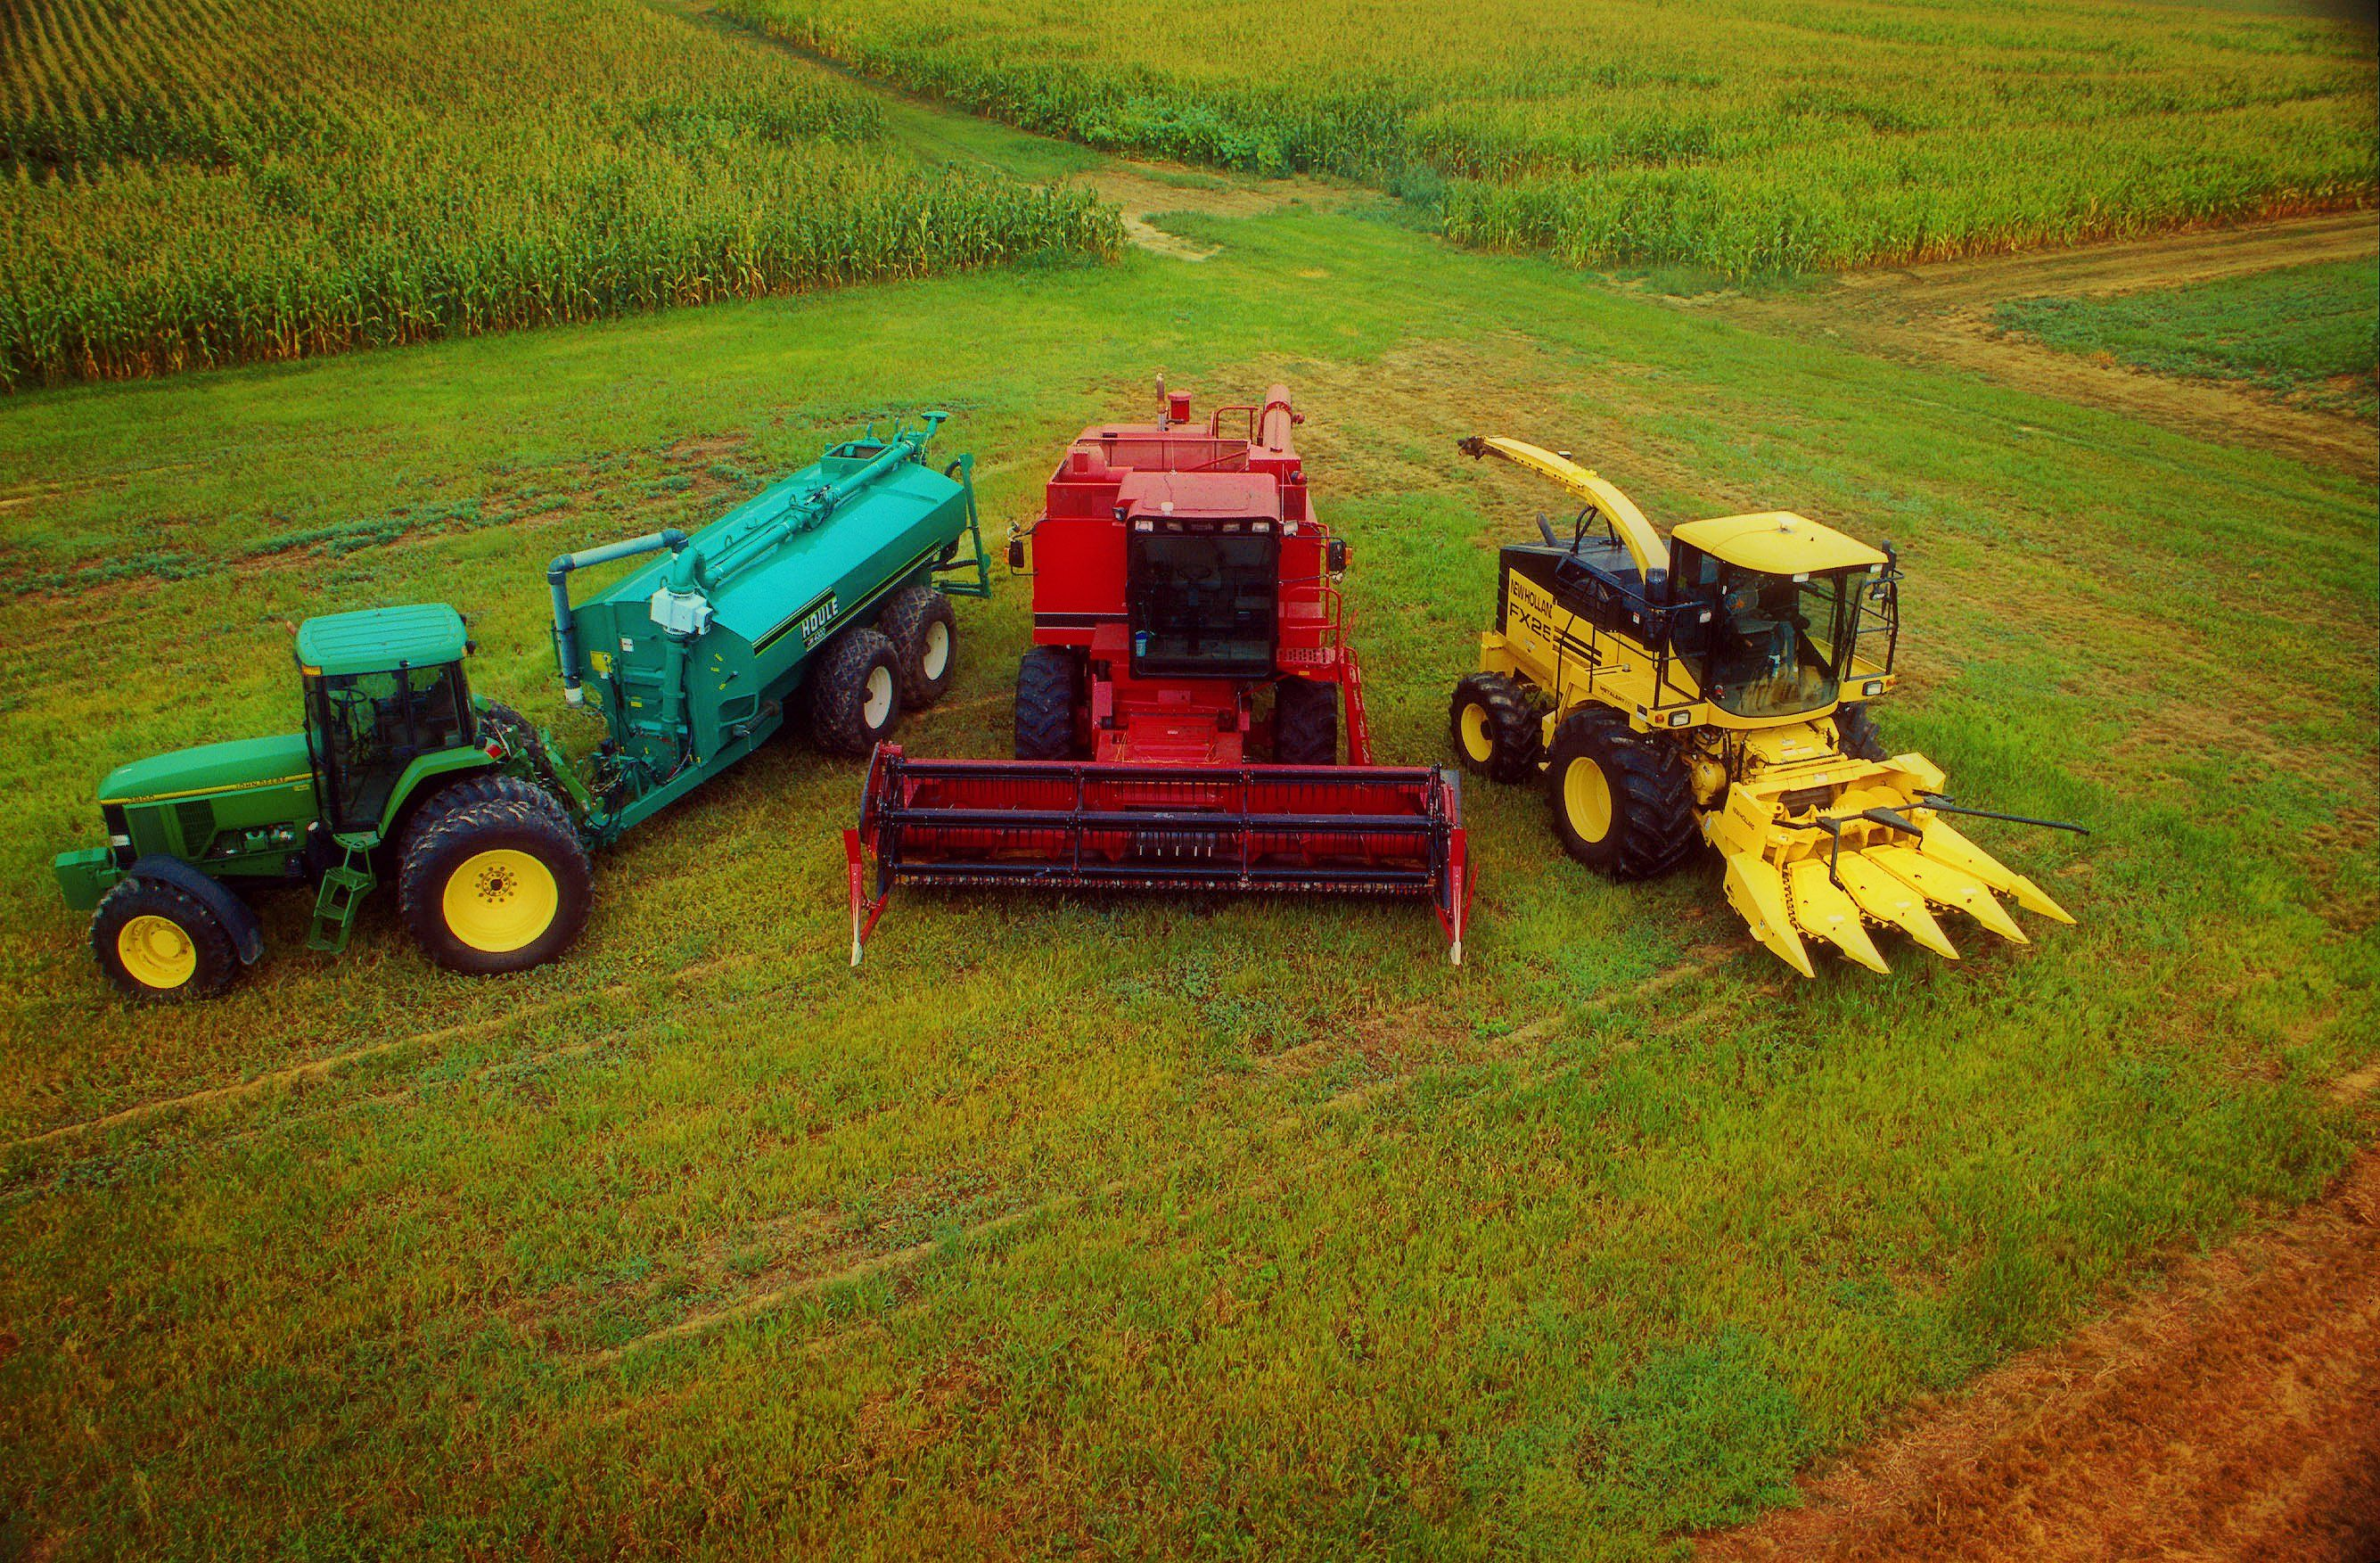 Agricultural & Forestry Machinery Market to Reach US$ 400 Bn by 2029 | New  holland agriculture, Tractors, Farm equipment